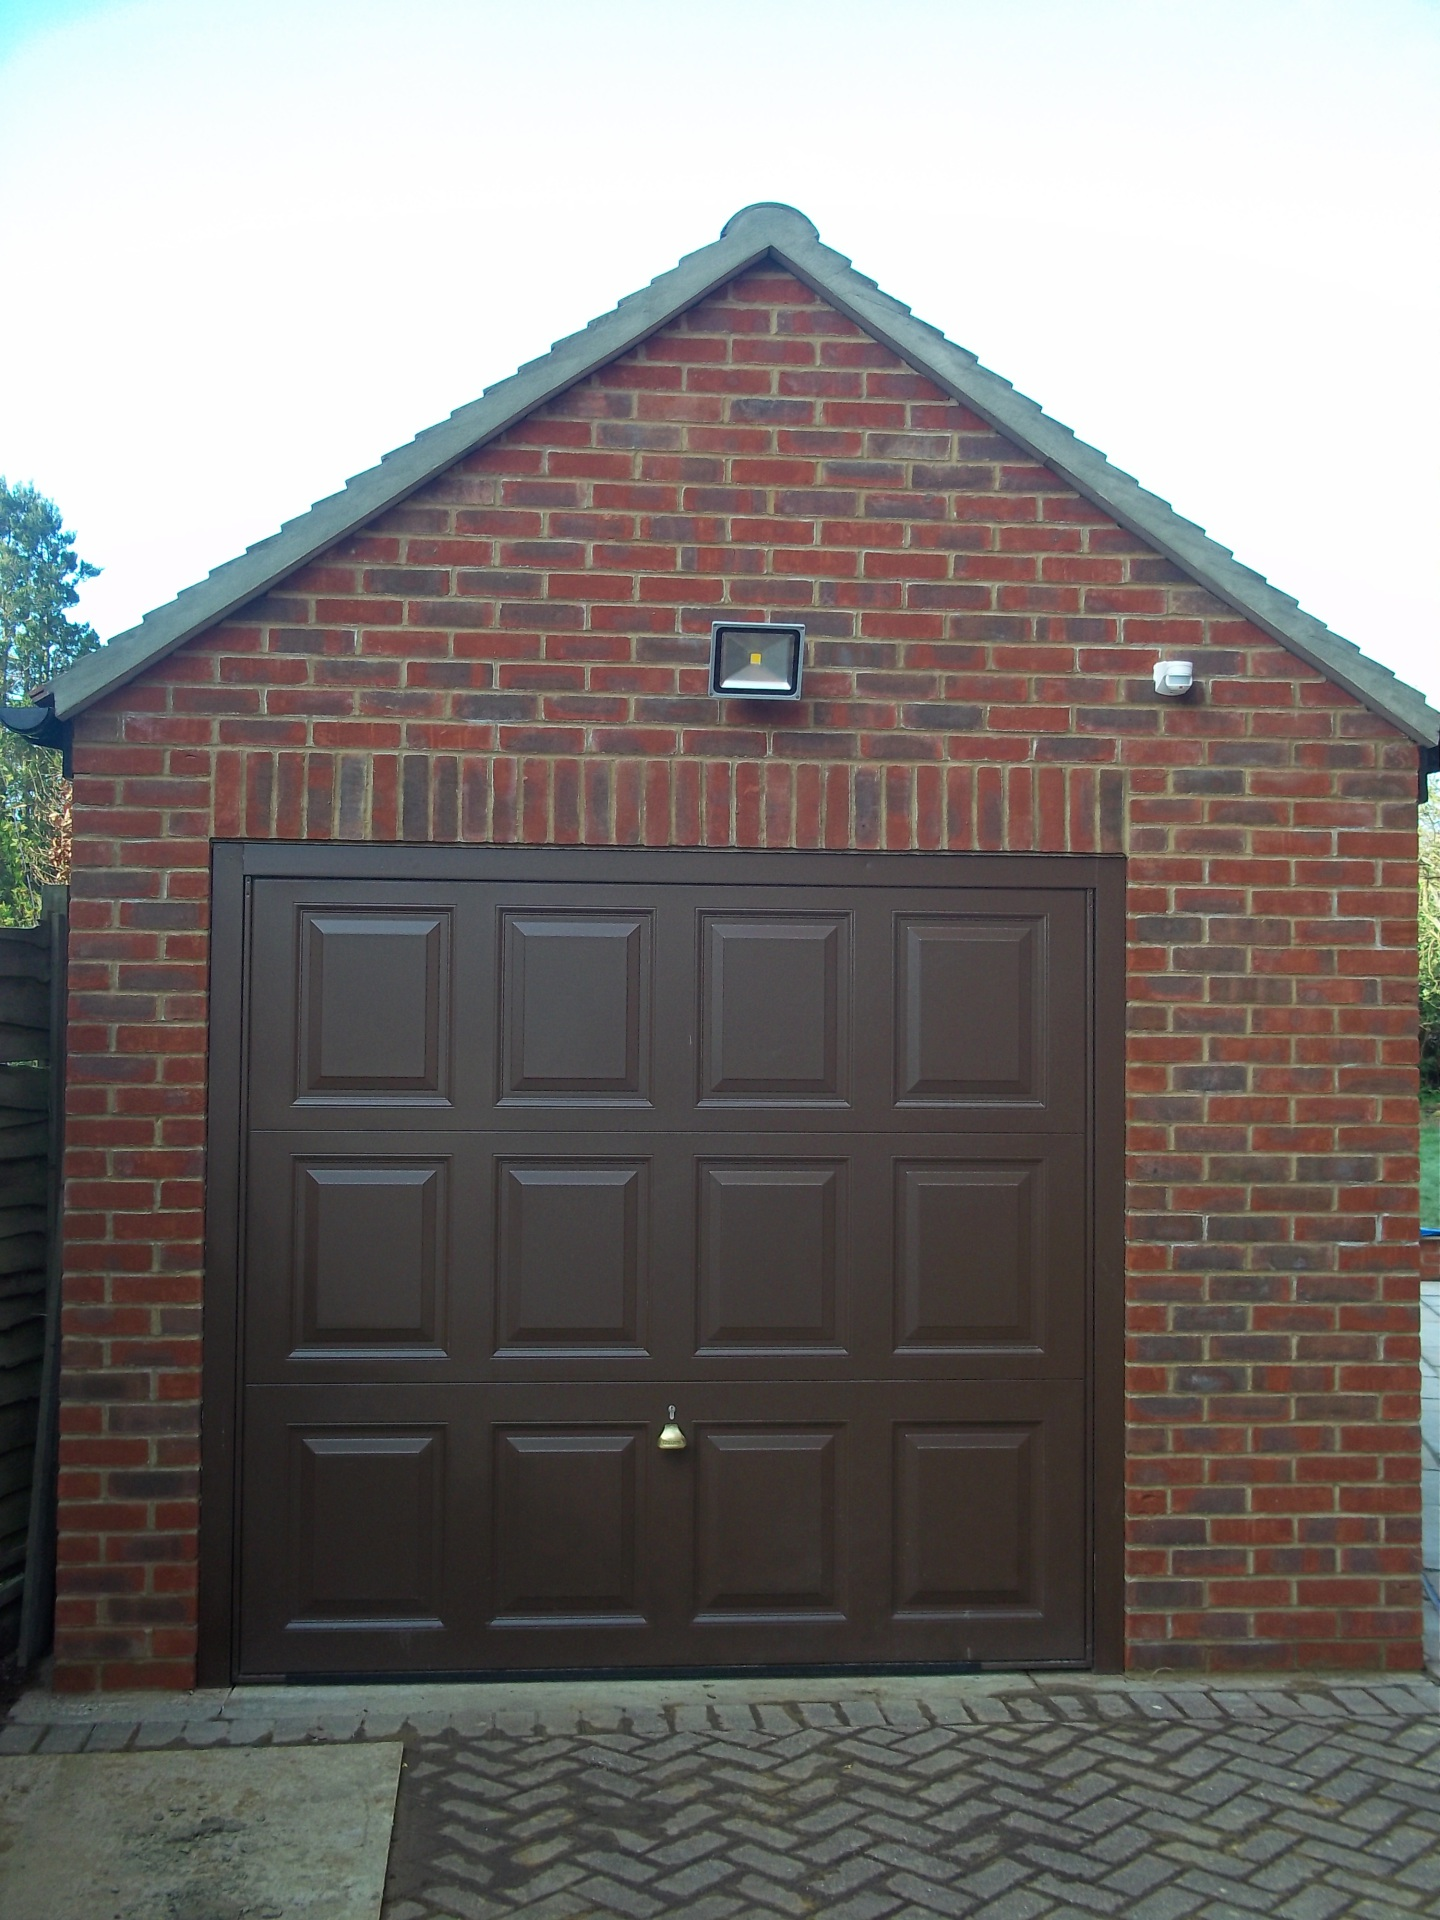 Detached single garage